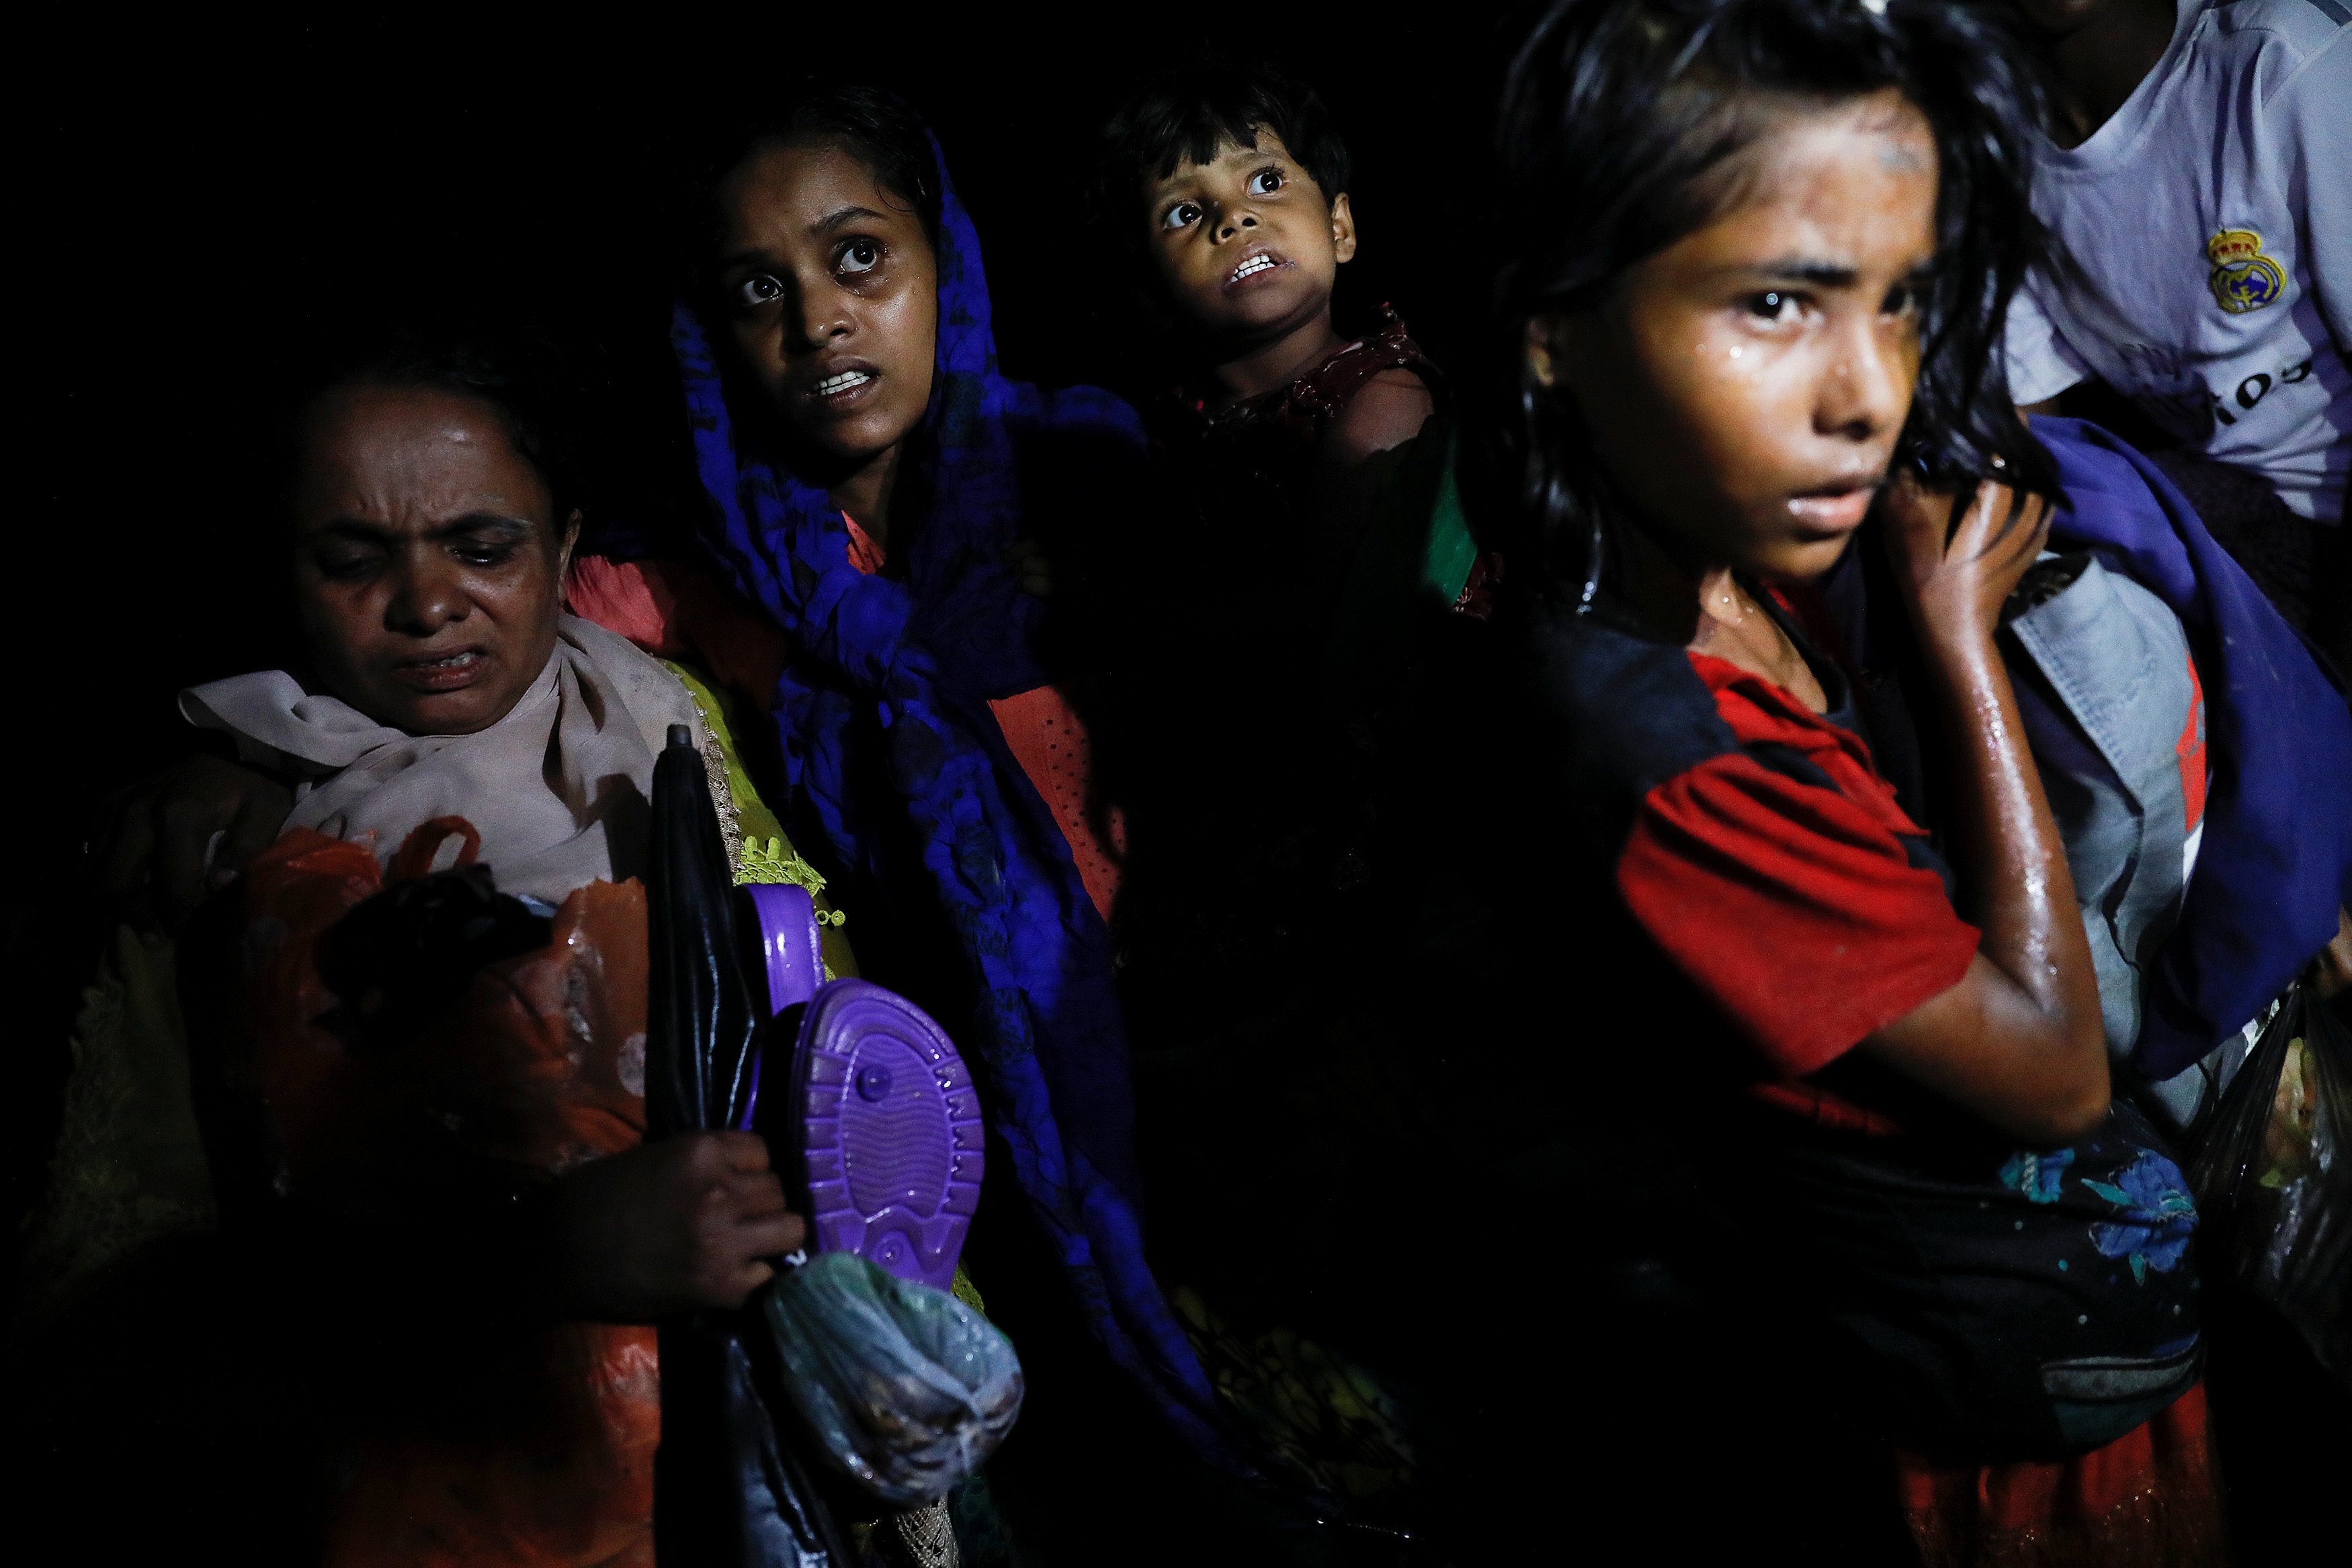 Women carry children through the water as hundreds of Rohingya refugees arrive under the cover of darkness by wooden boats from Myanmar to the shore of Shah Porir Dwip, in Teknaf, near Cox's Bazar in Bangladesh, September 27, 2017. Picture taken September 27, 2017. REUTERS/Damir Sagolj